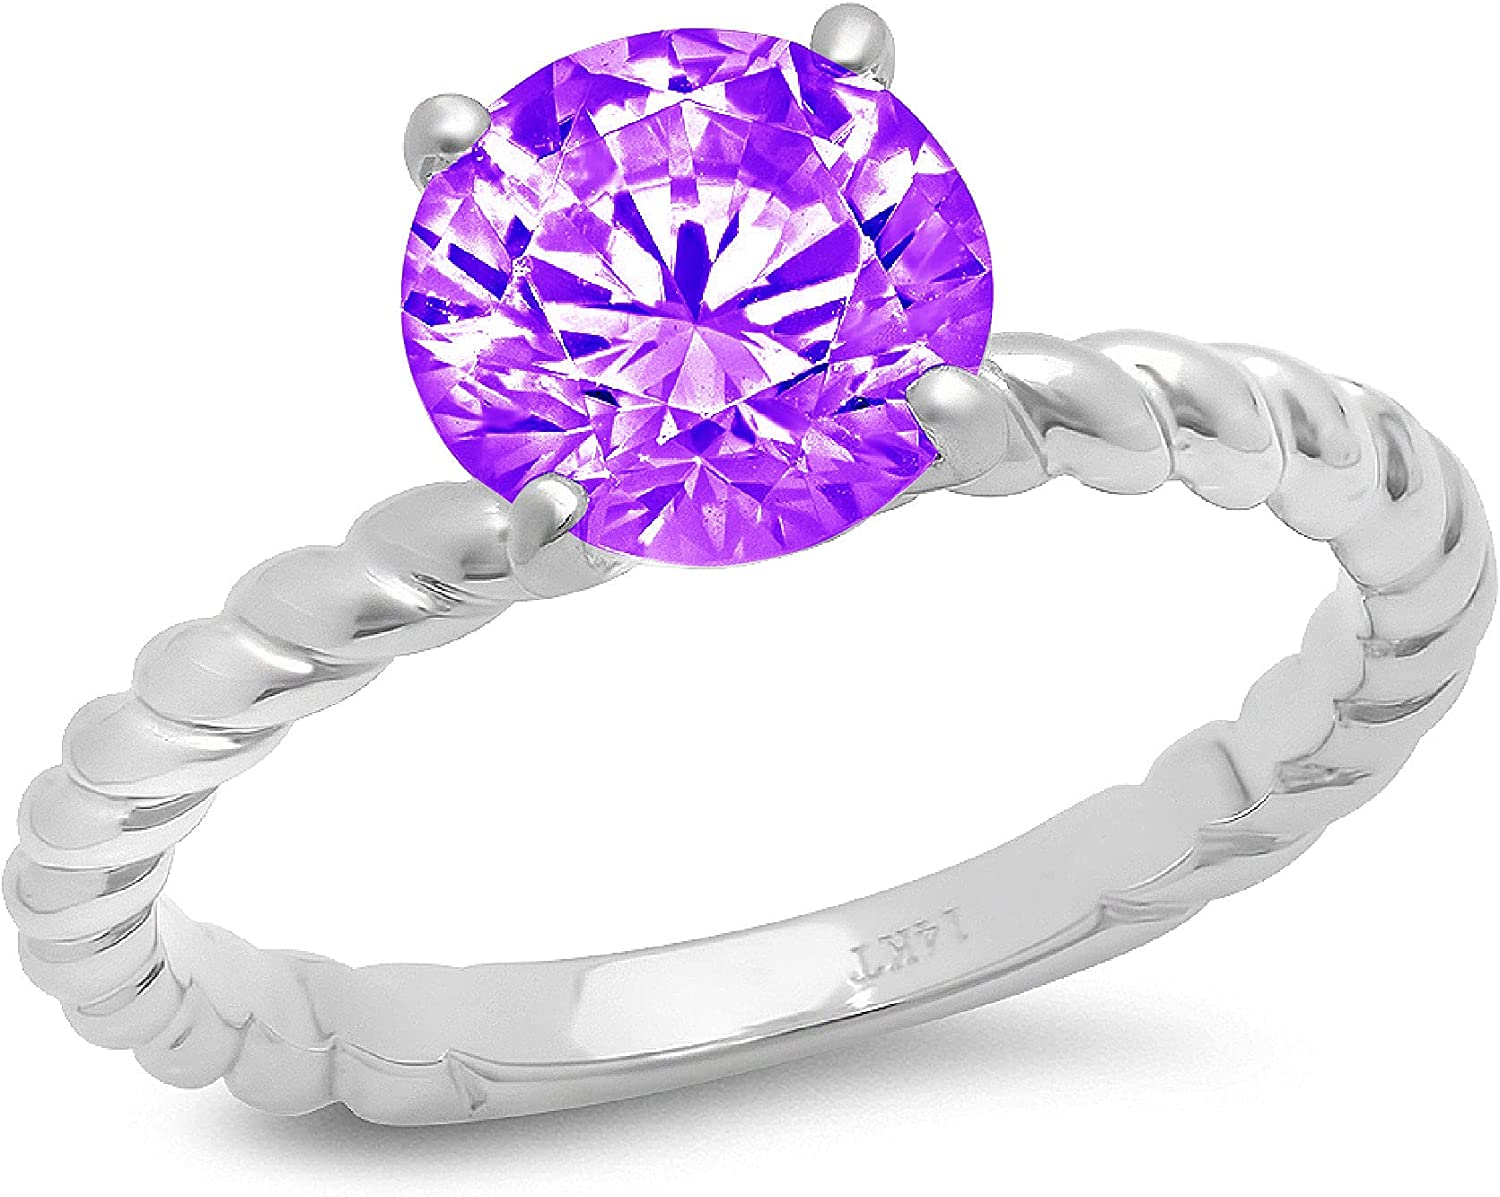 Clara Pucci 2ct Round Cut Solitaire Ranking TOP4 Natural Knot Max 76% OFF Twisted Rope Pu